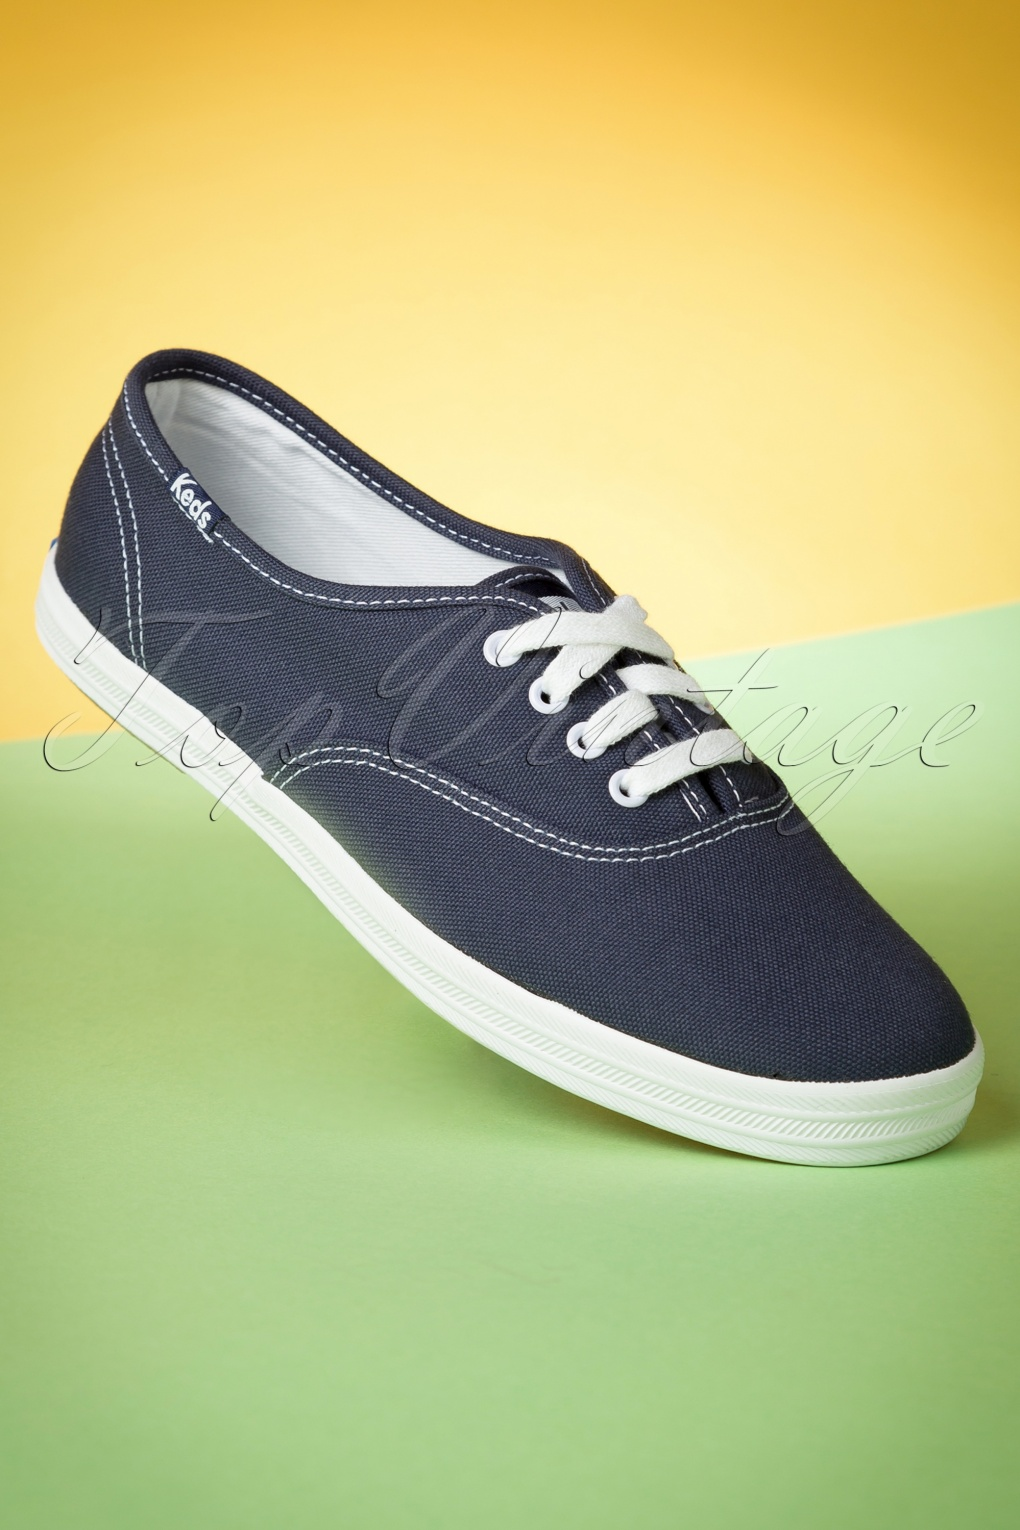 Swing Dance Shoes- Vintage, Lindy Hop, Tap, Ballroom 50s Champion Core Text Sneakers in Navy £53.76 AT vintagedancer.com